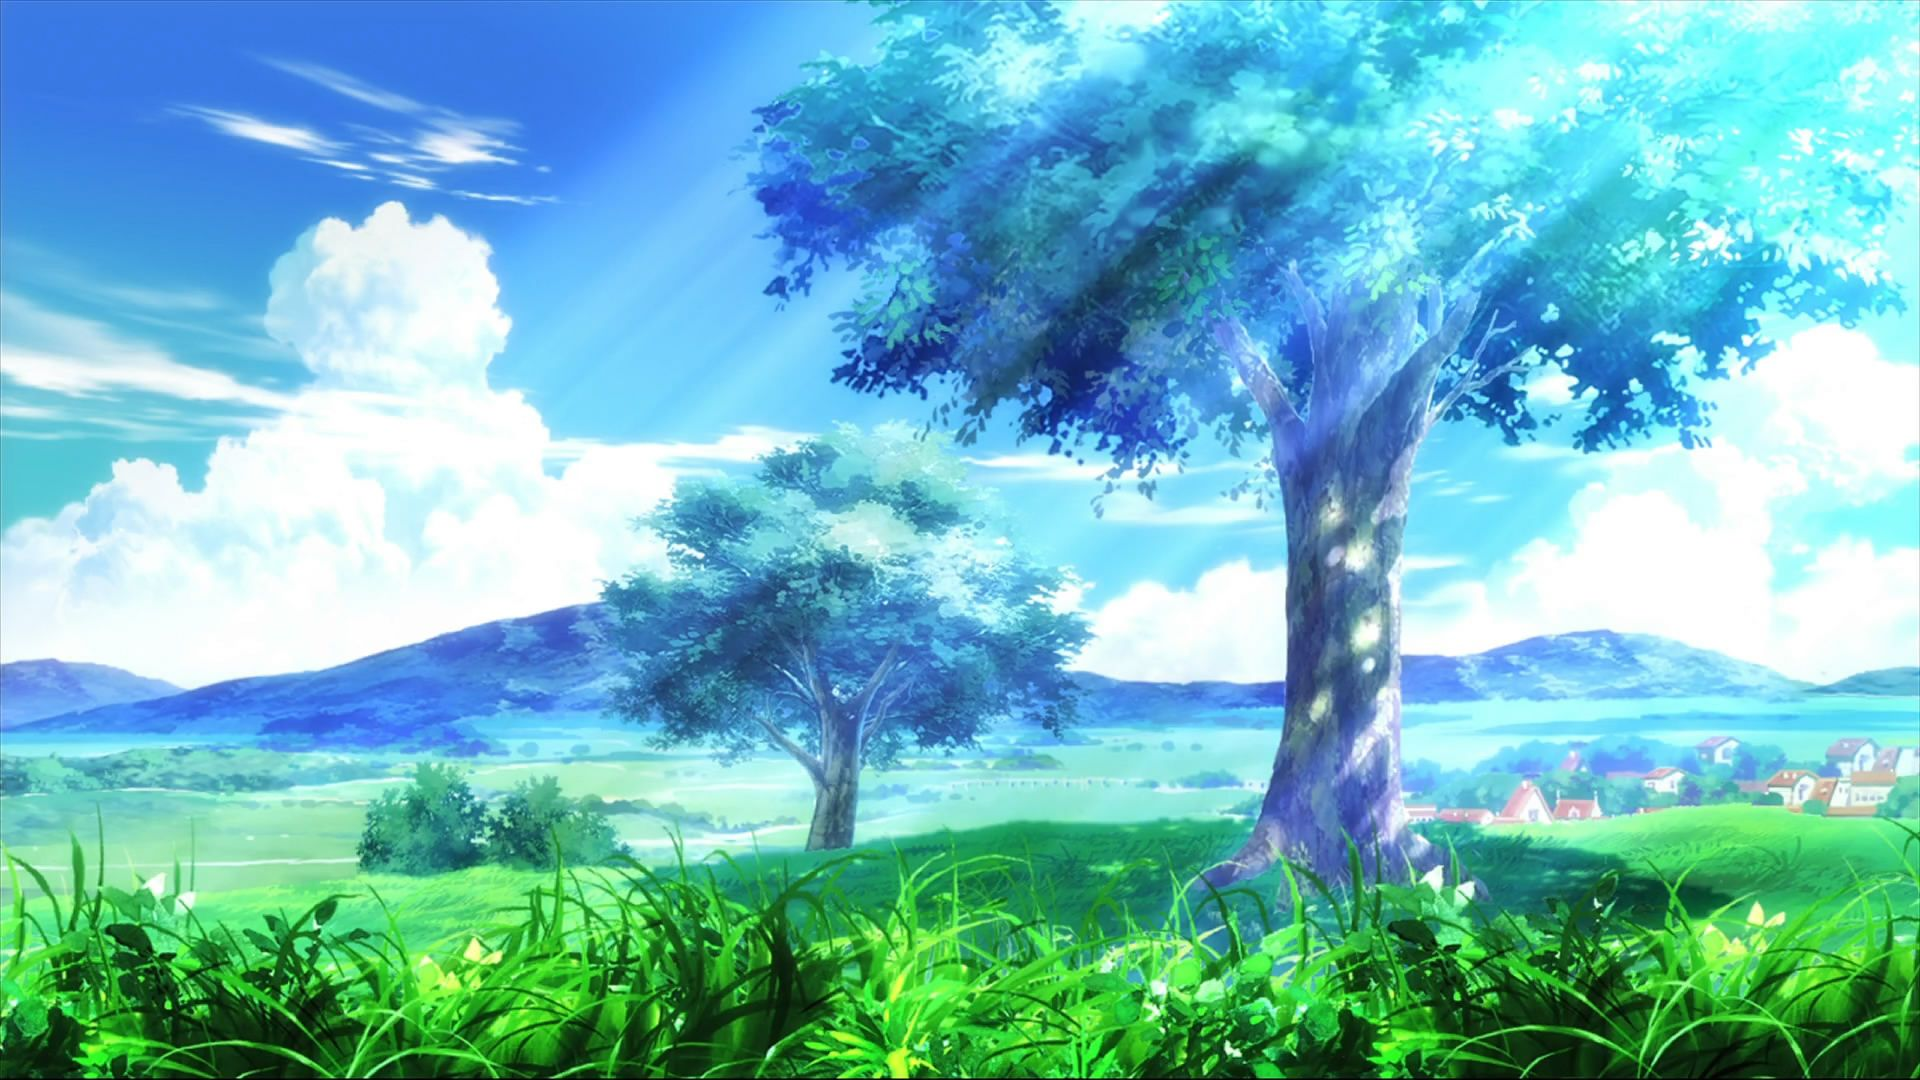 Anime Scenery Desktop Background | Wallmeta.com | Anime ...